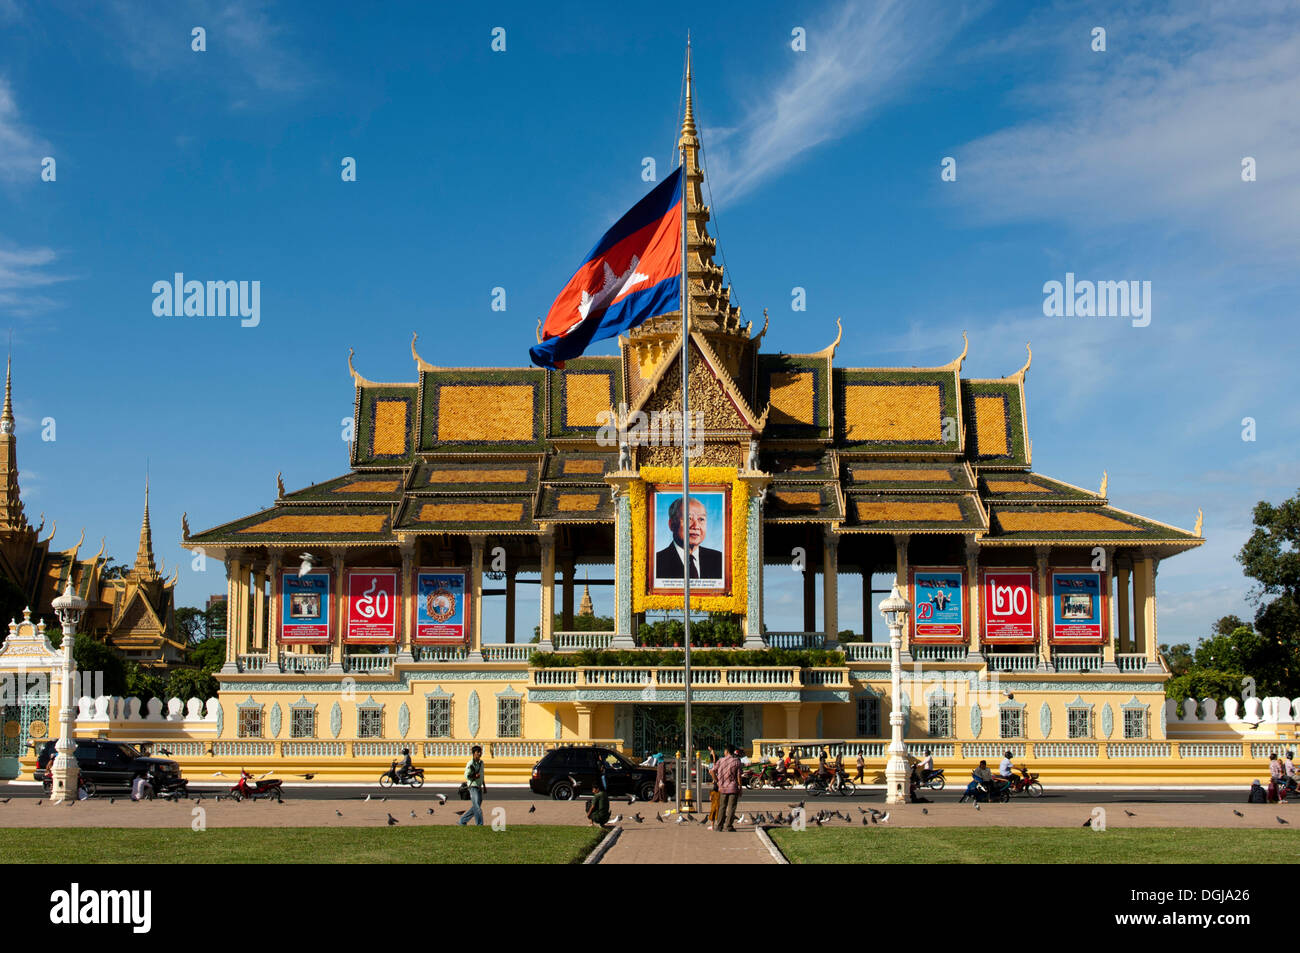 Moonlight Pavilion, Chan Chaya Pavilion, Royal Palace, with the portrait of the deceased King Norodom Sihanouk and the national - Stock Image